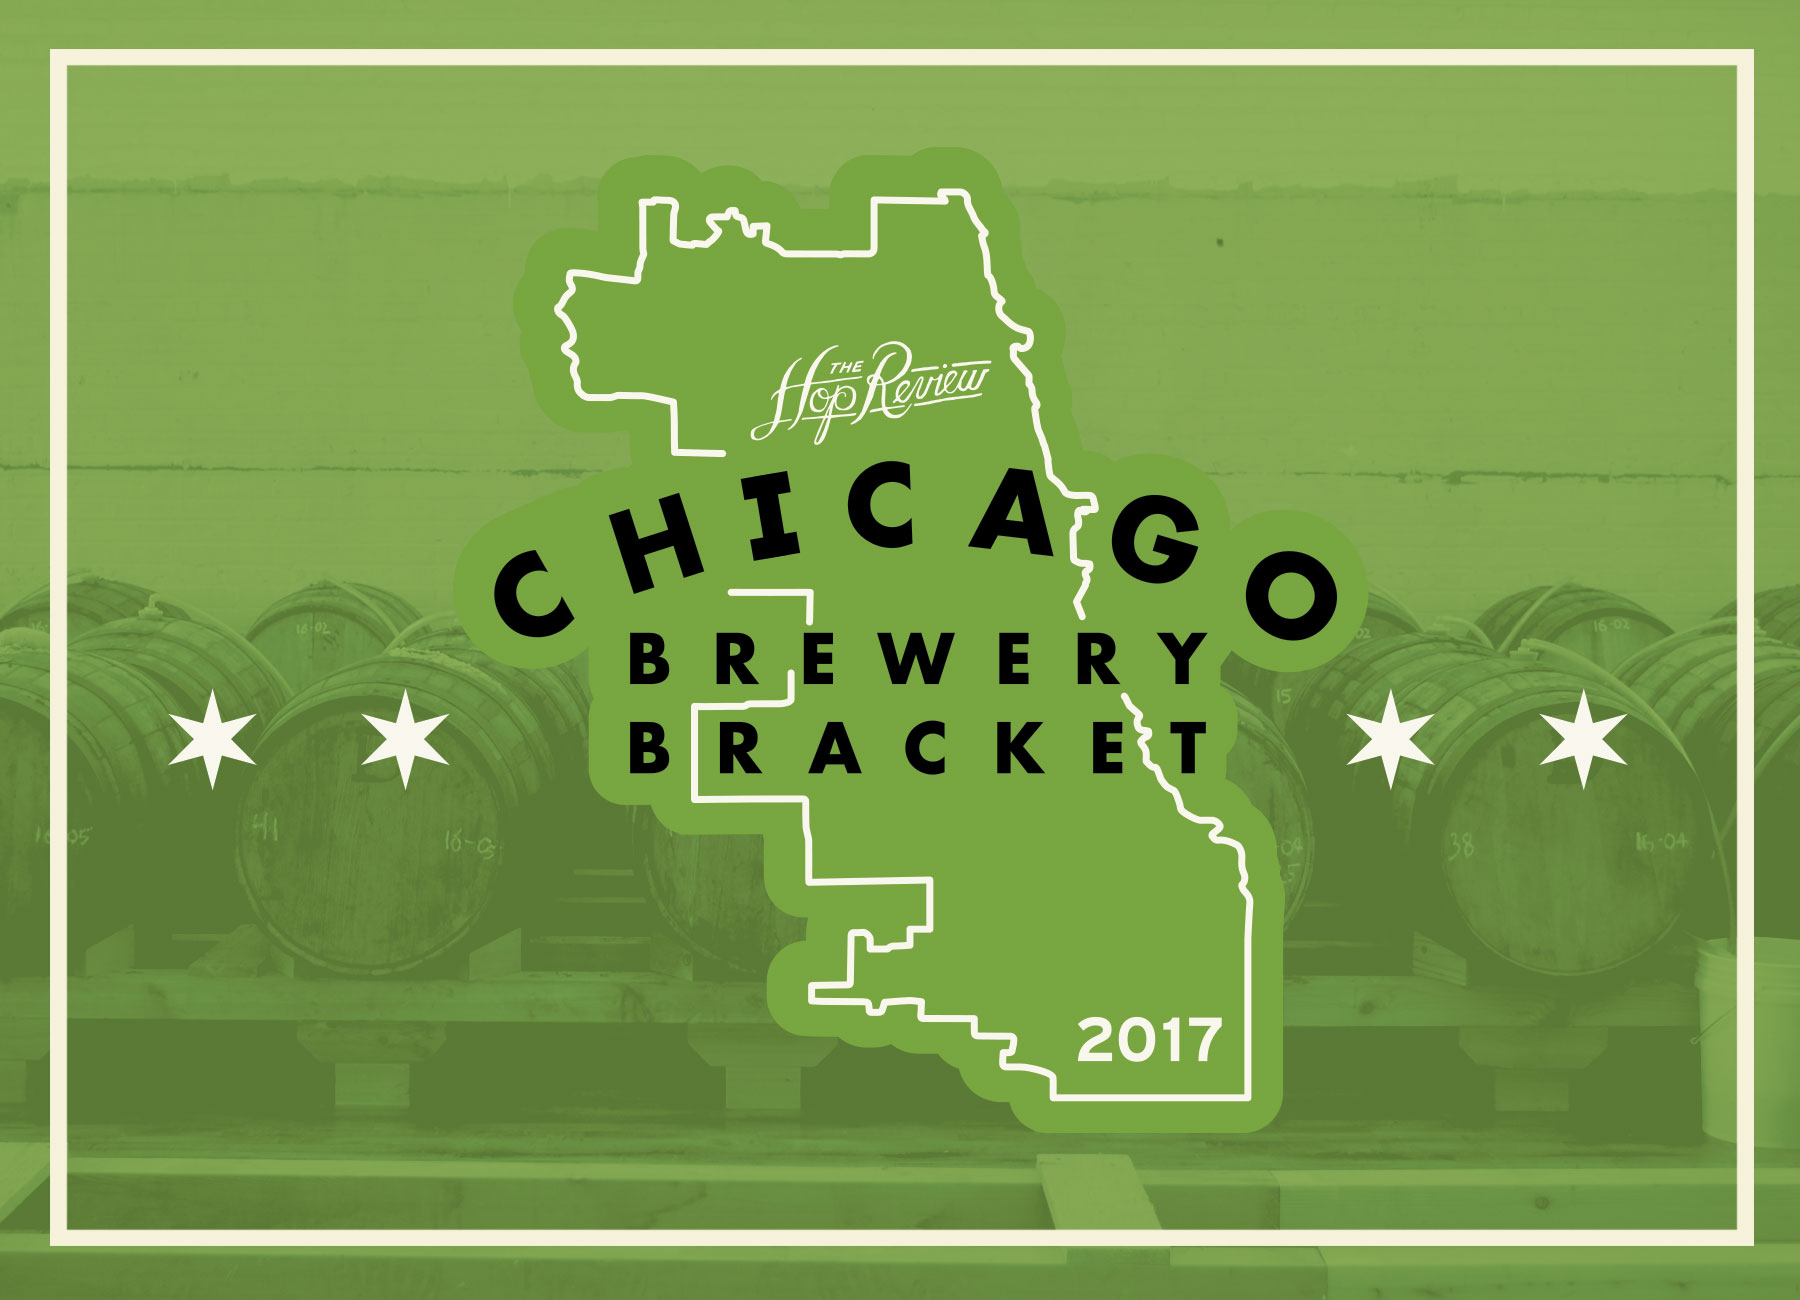 The Chicago Brewery Bracket 2017